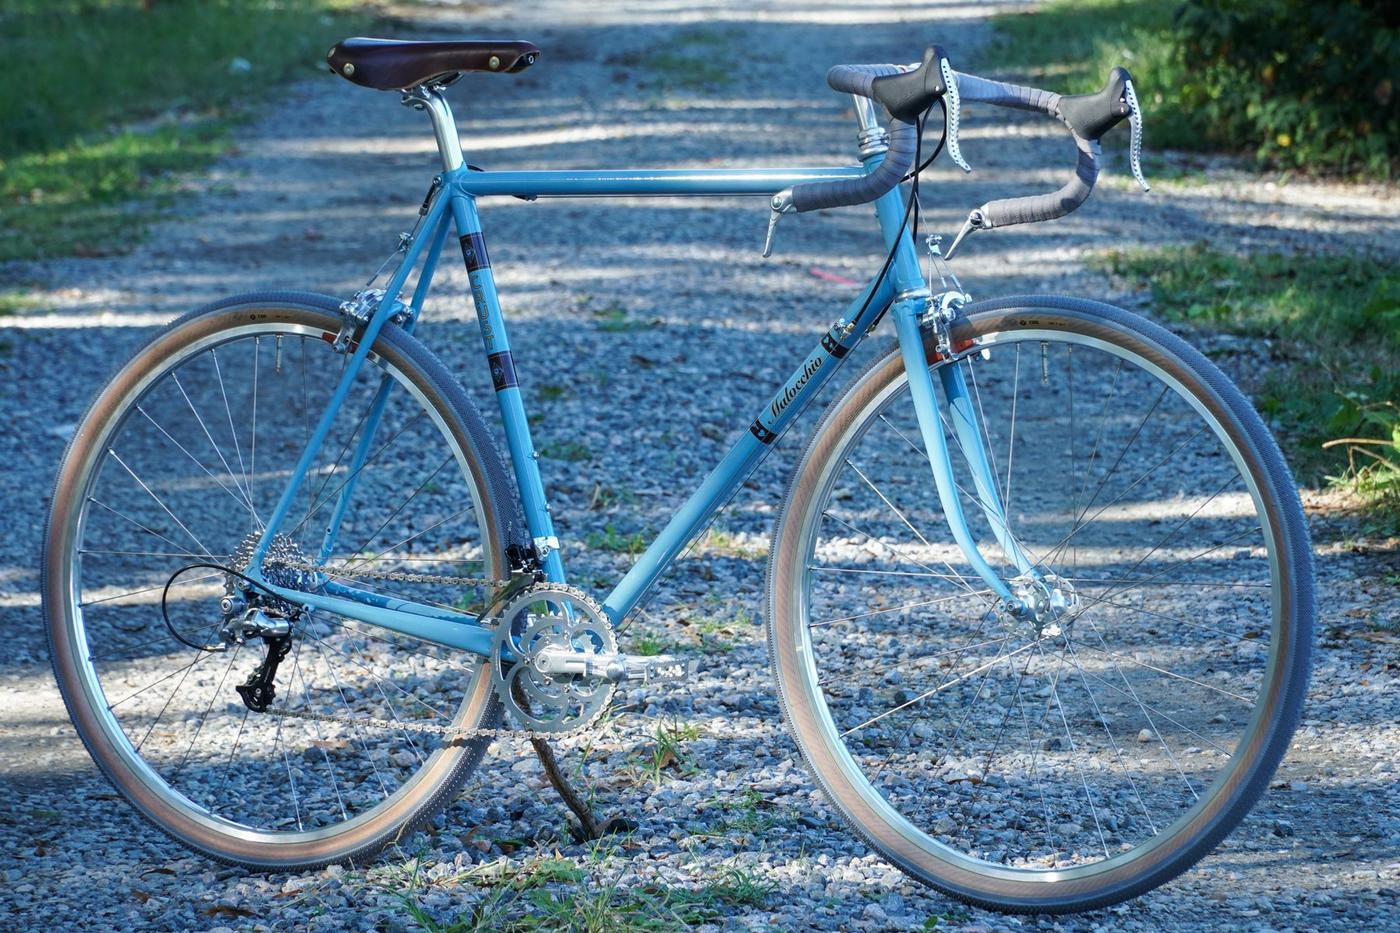 Own a New Complete Malocchio by Crust Bikes Early!